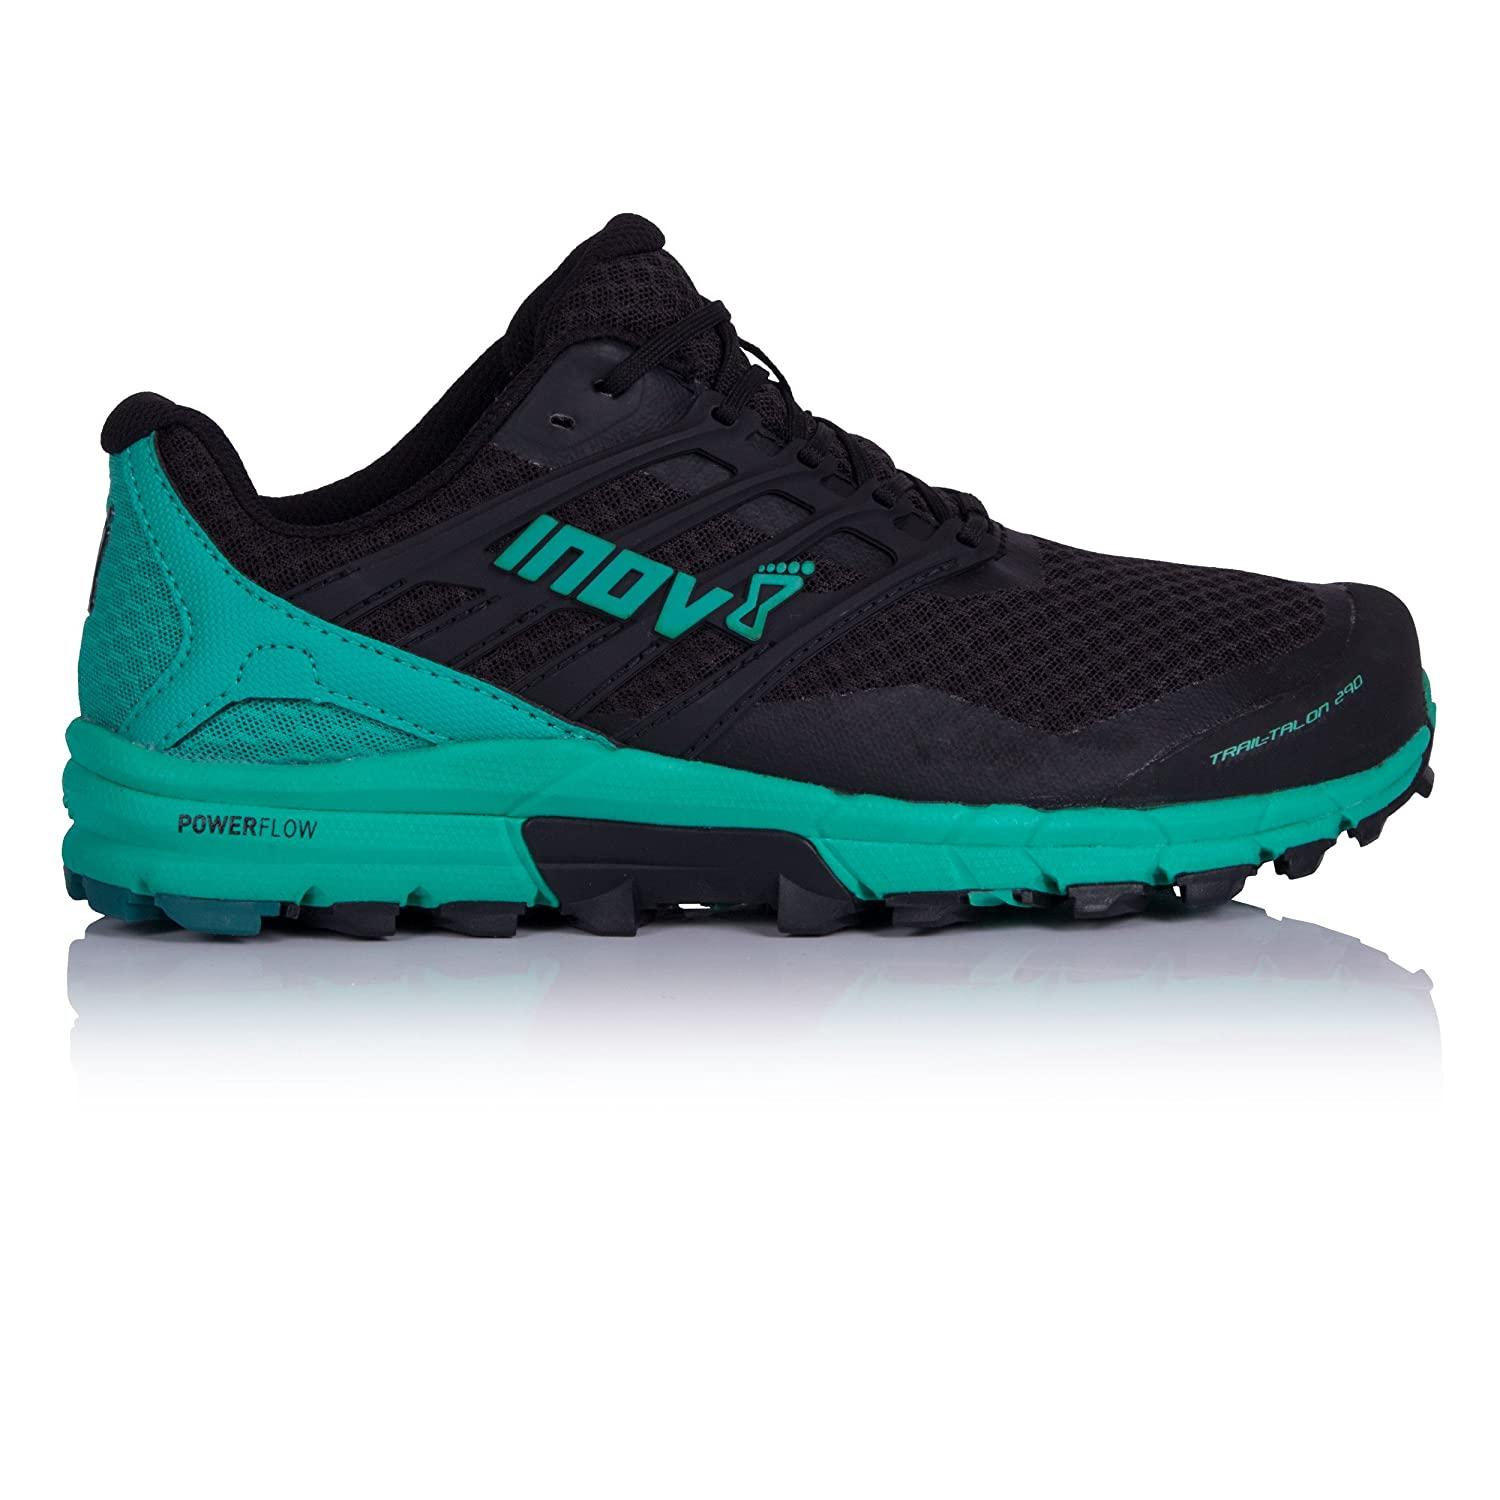 Inov-8 Womens Trailtalon 290 B074H9T6SF 5 M UK|Black/Teal